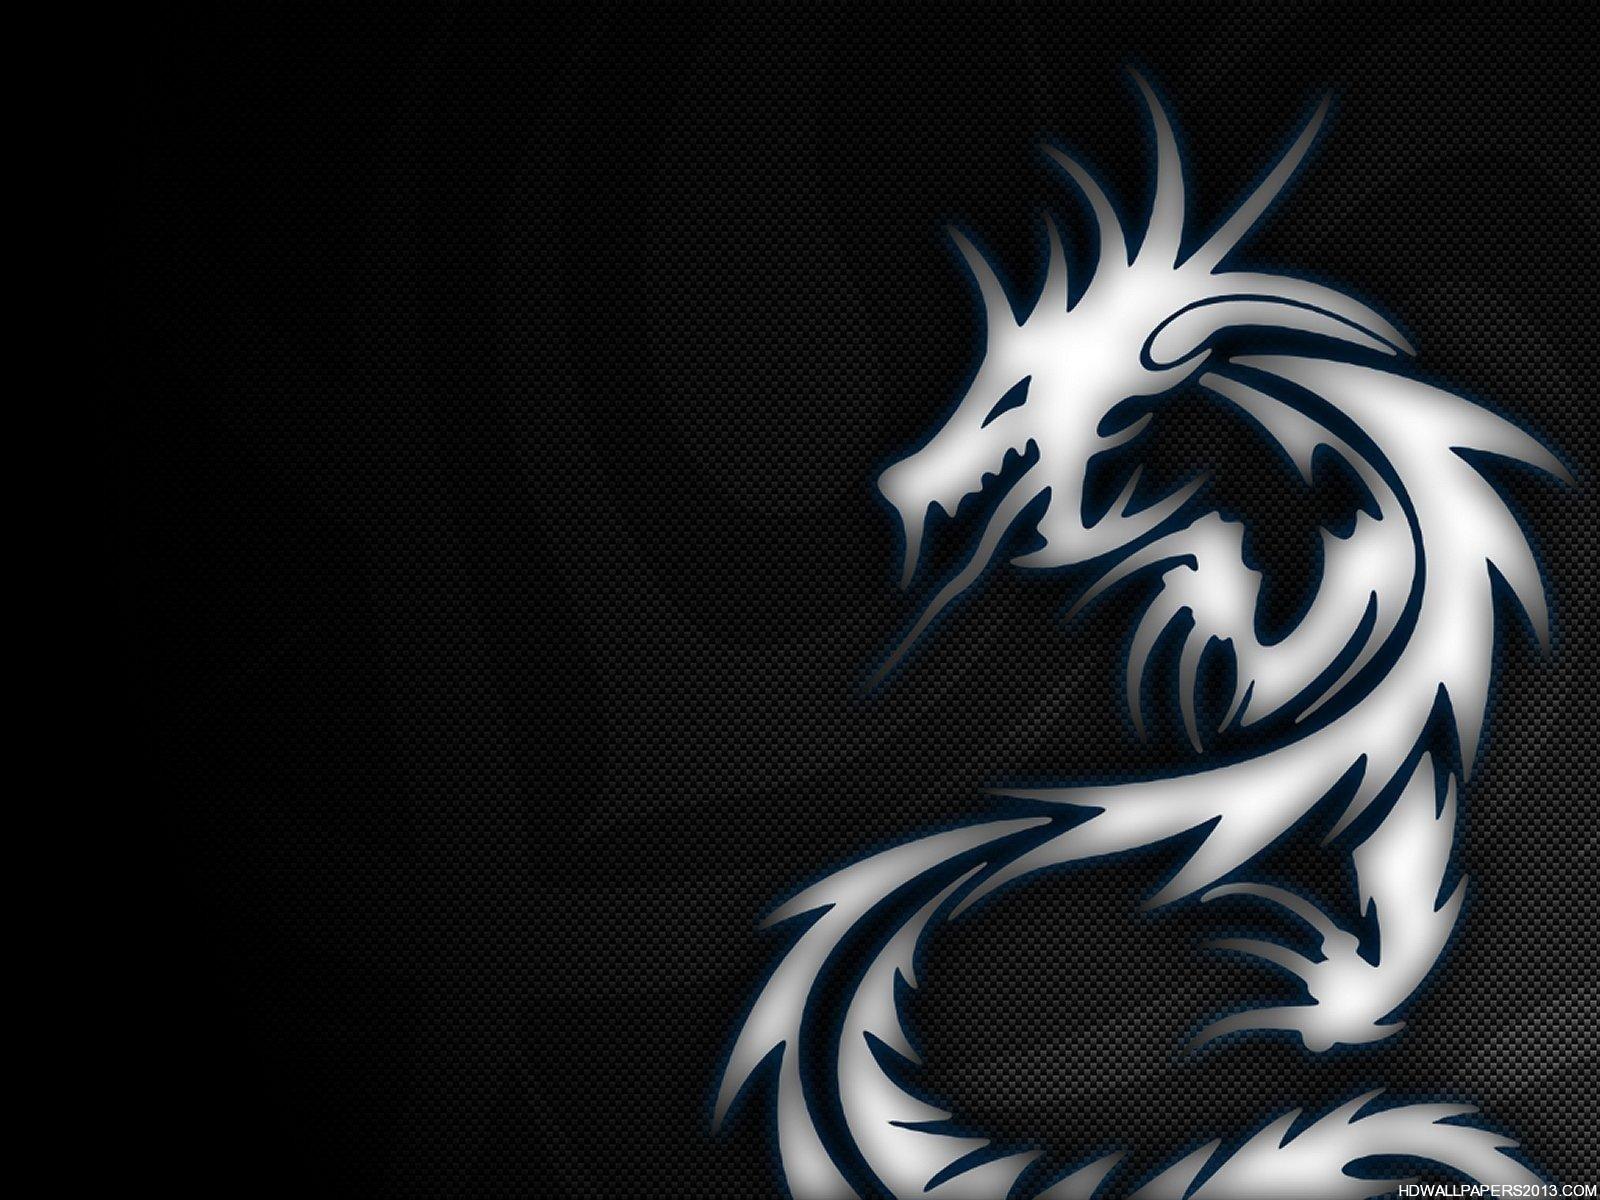 Dragon Desktop Wallpapers HD Wallpapers Dragon Desktop Wallpapers 1600x1200